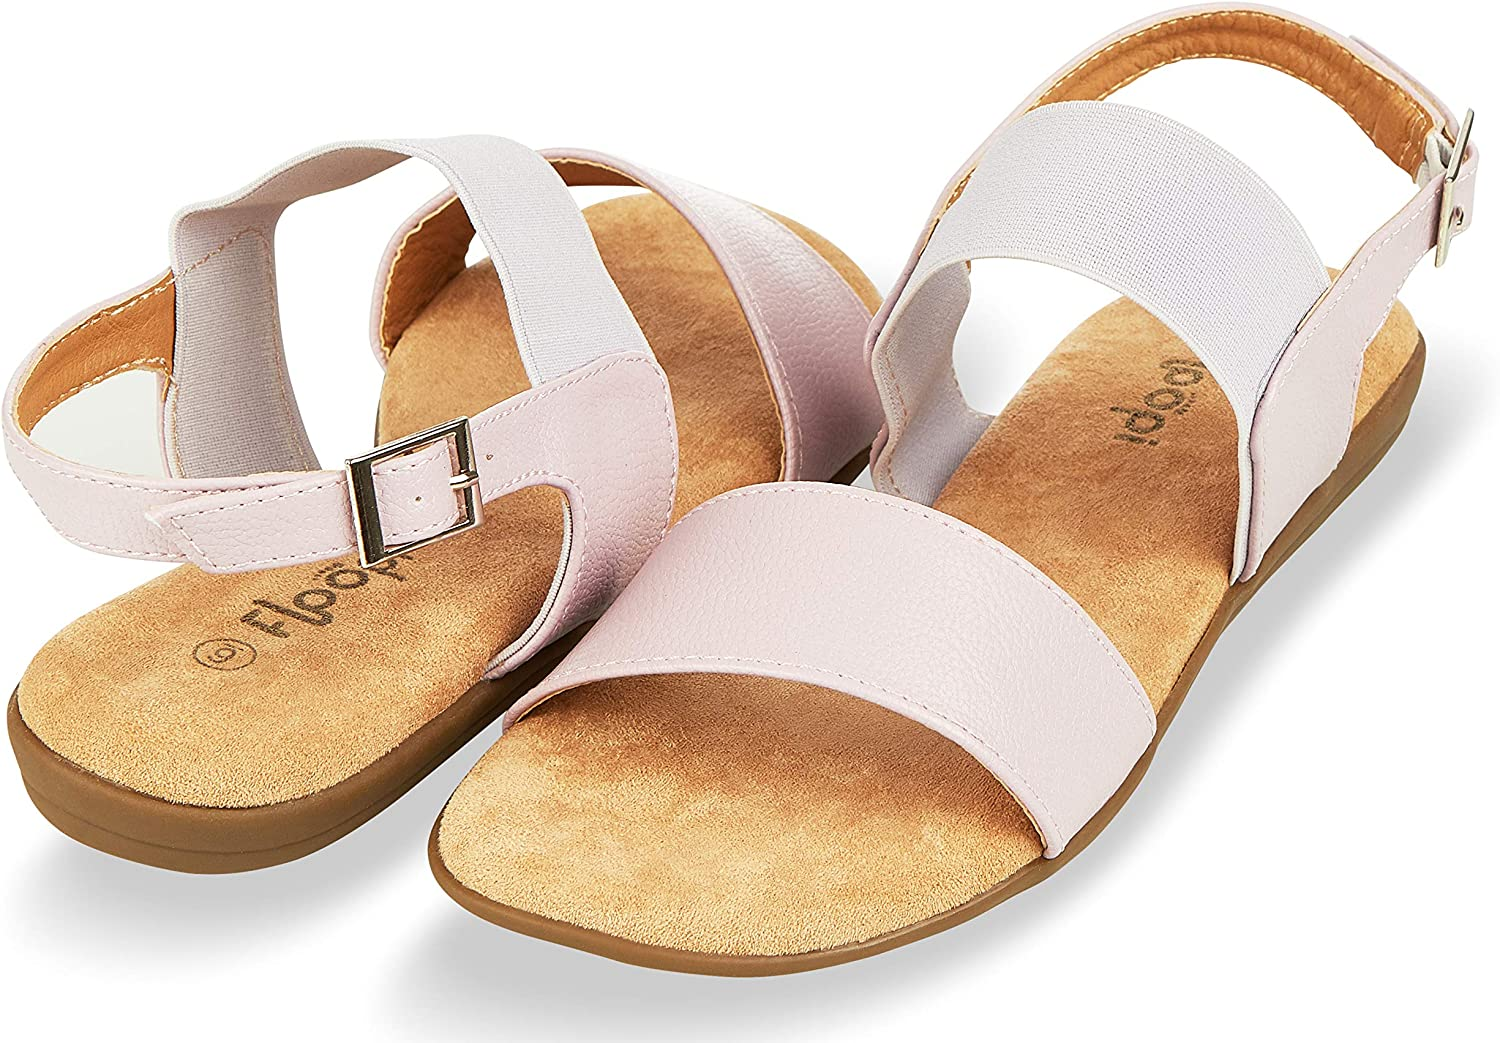 Floopi Summer Sandals for Women | Cute, Open Toe Sandals| Comfy, Wide Elastic & Faux Leather Ankle Straps W/Buckle Design, Flat Sole, Memory Foam Insole